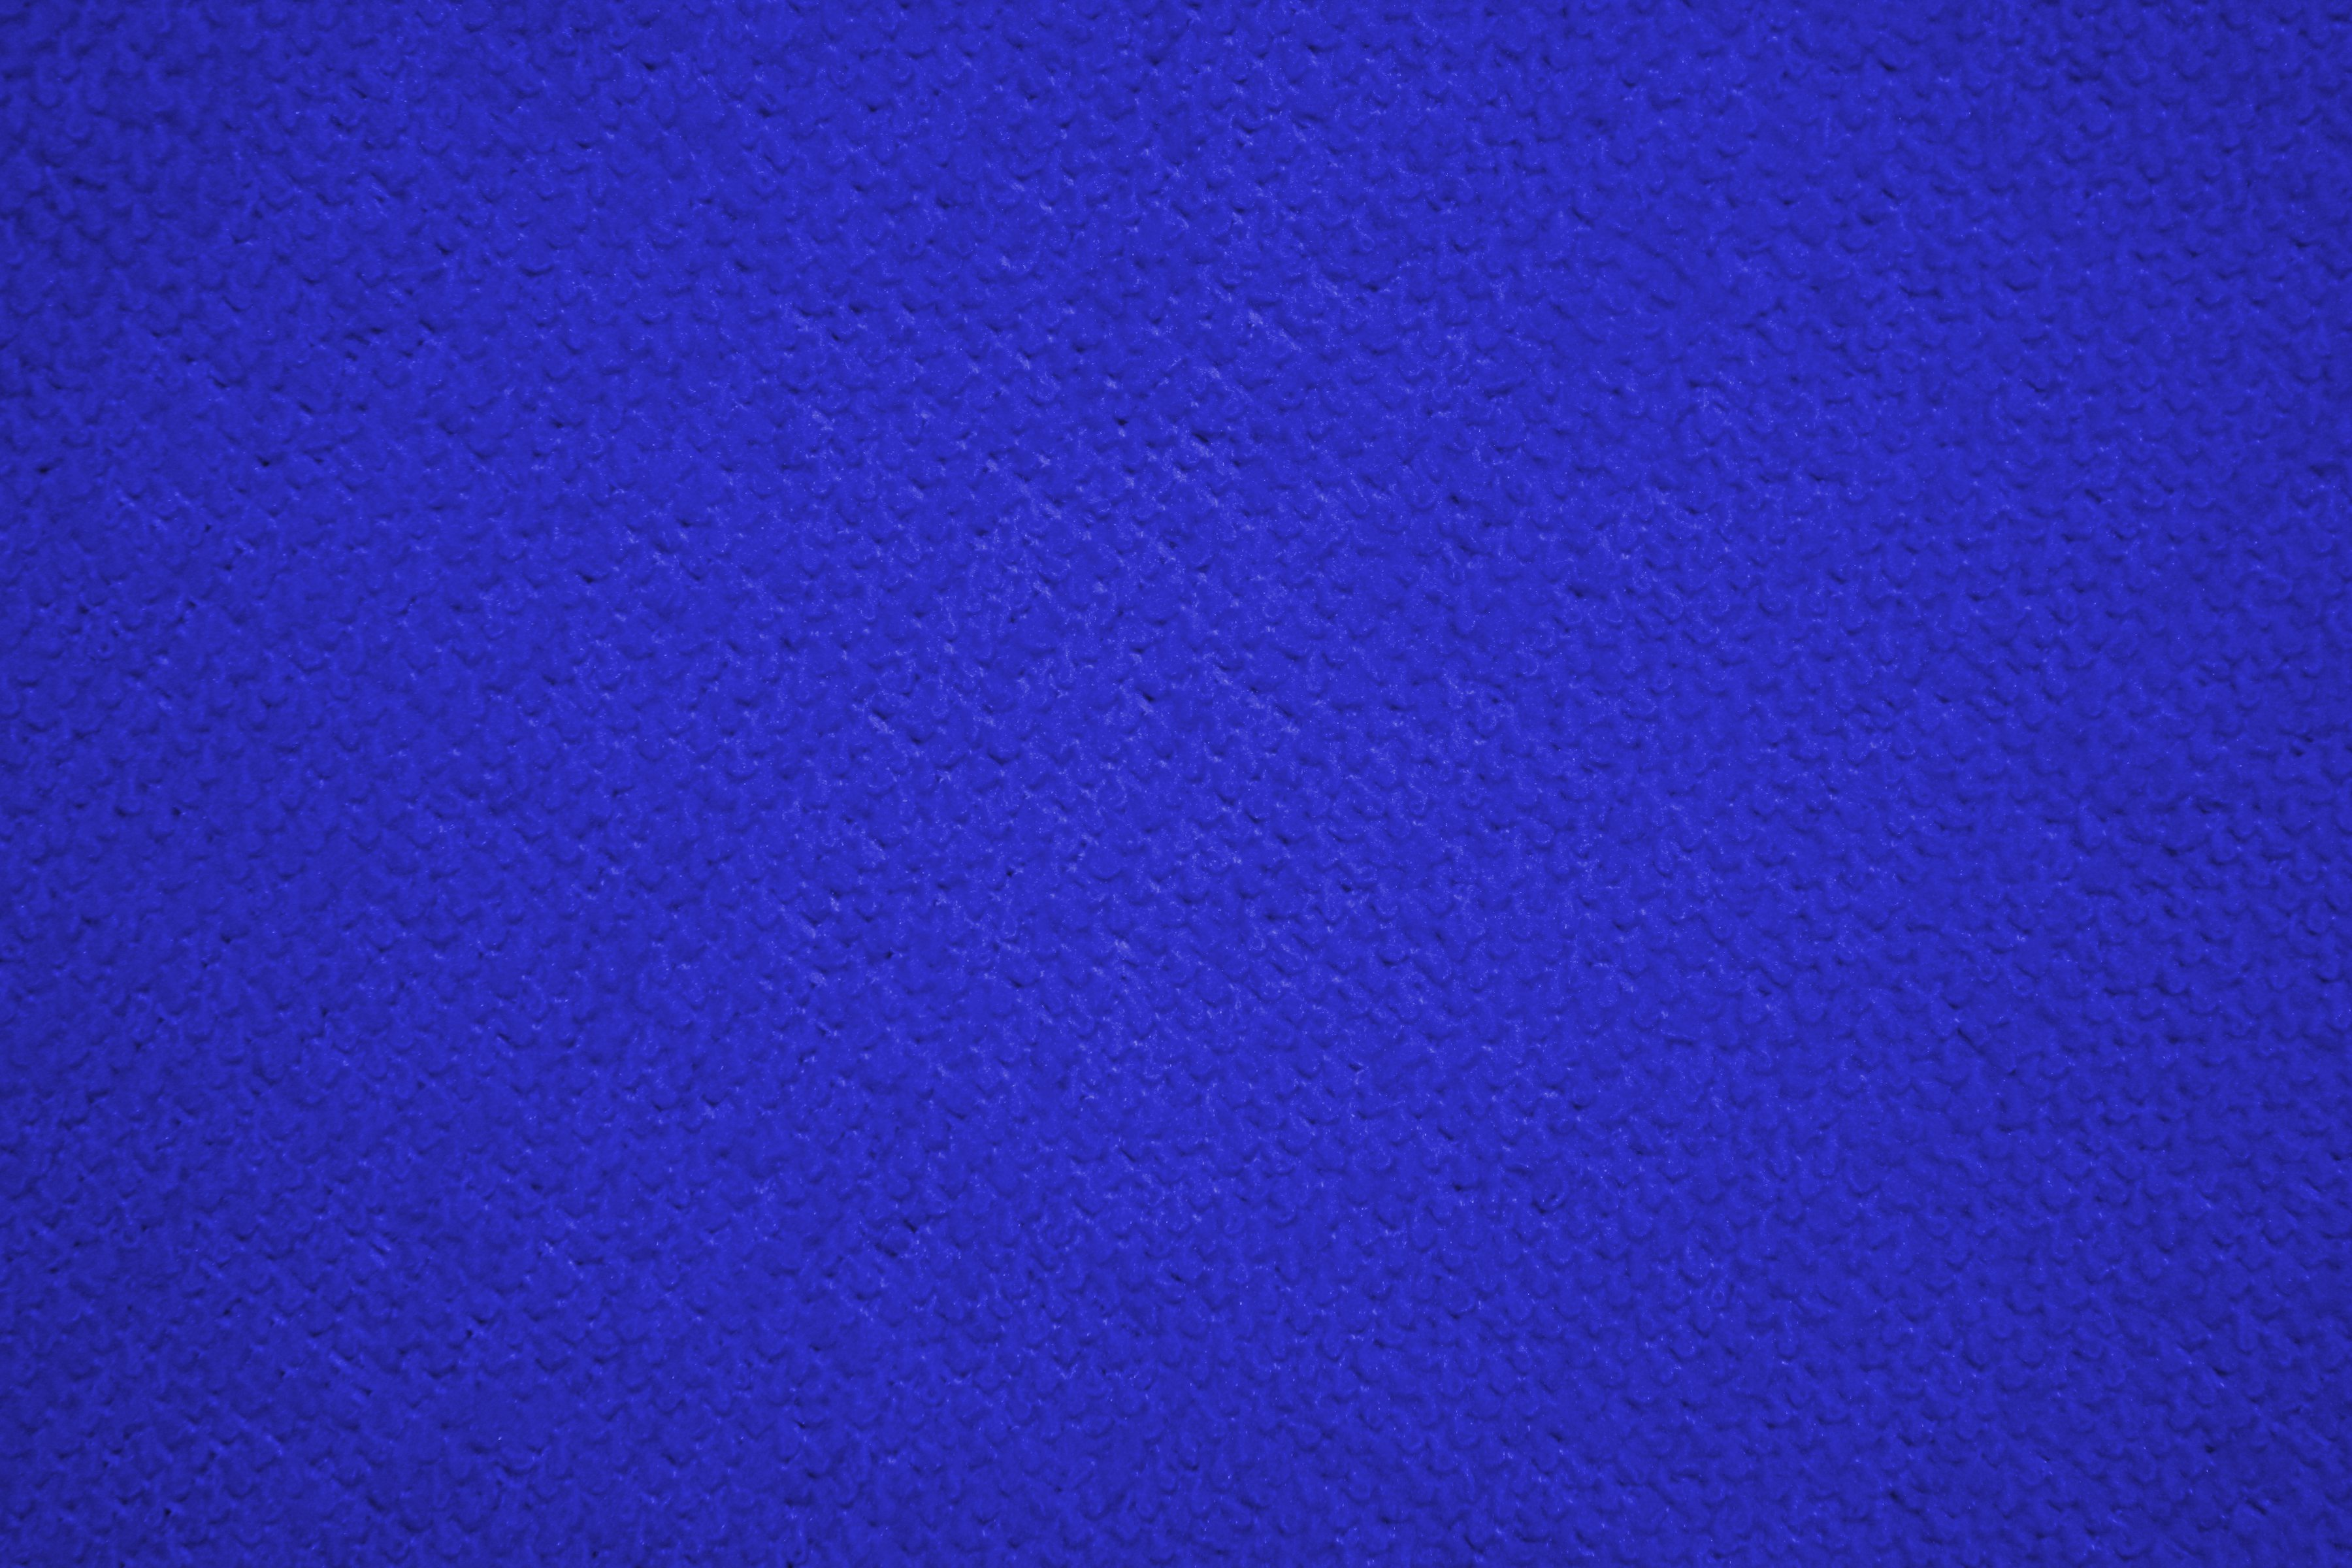 Cobalt Blue Microfiber Cloth Fabric Texture Picture Free